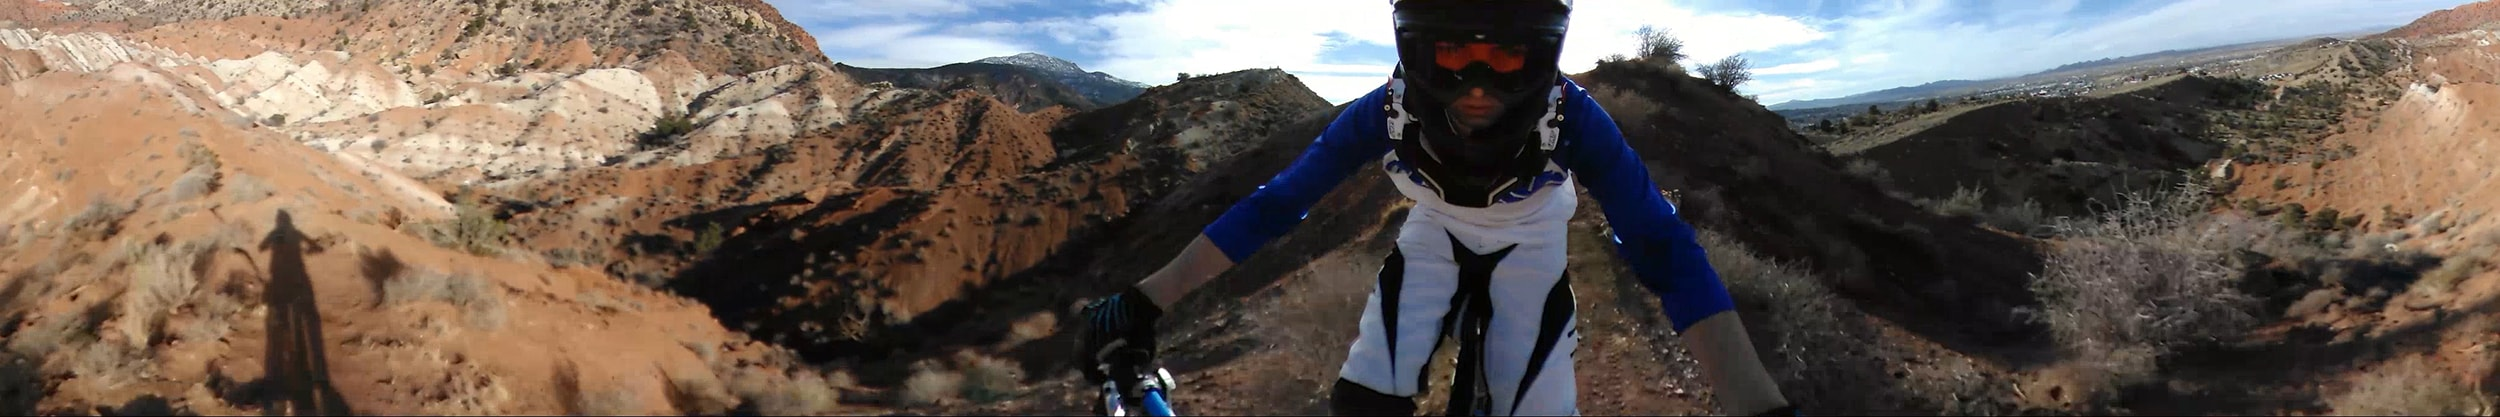 V.360 MOUNTAIN BIKE PANO